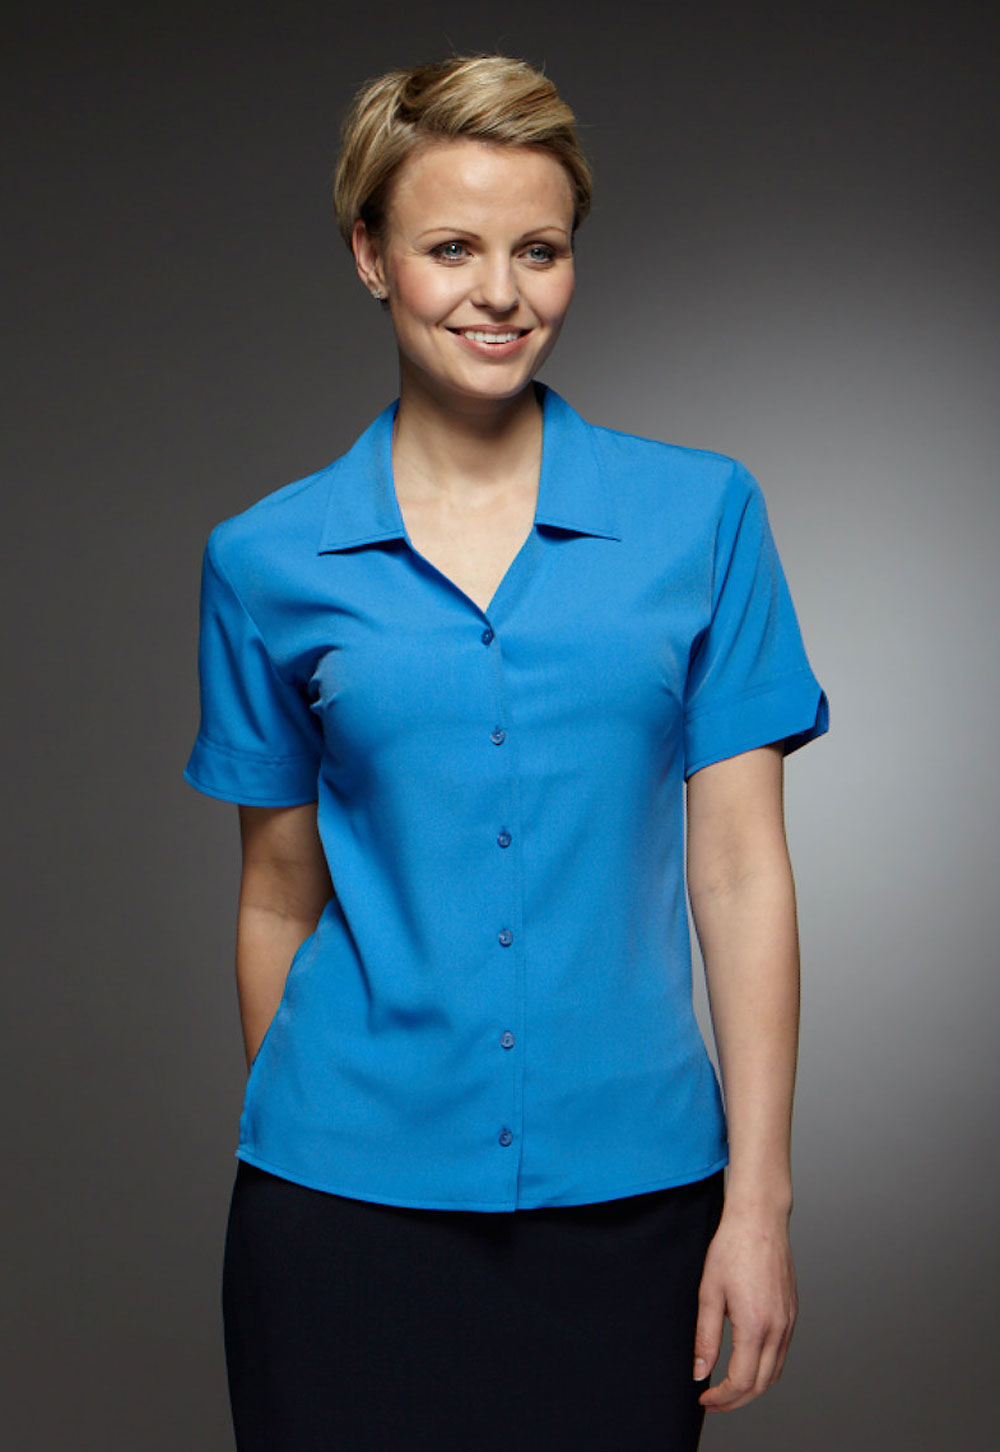 Brilliant A Classic Look For Classic Work Touchtex Technology Adds Superior Color Retention And Soil Release Through Industrial Laundering, And A Squared Bottom Hem Can Be Worn In Or Out The Performance Blend Polycotton Poplin Keeps You On